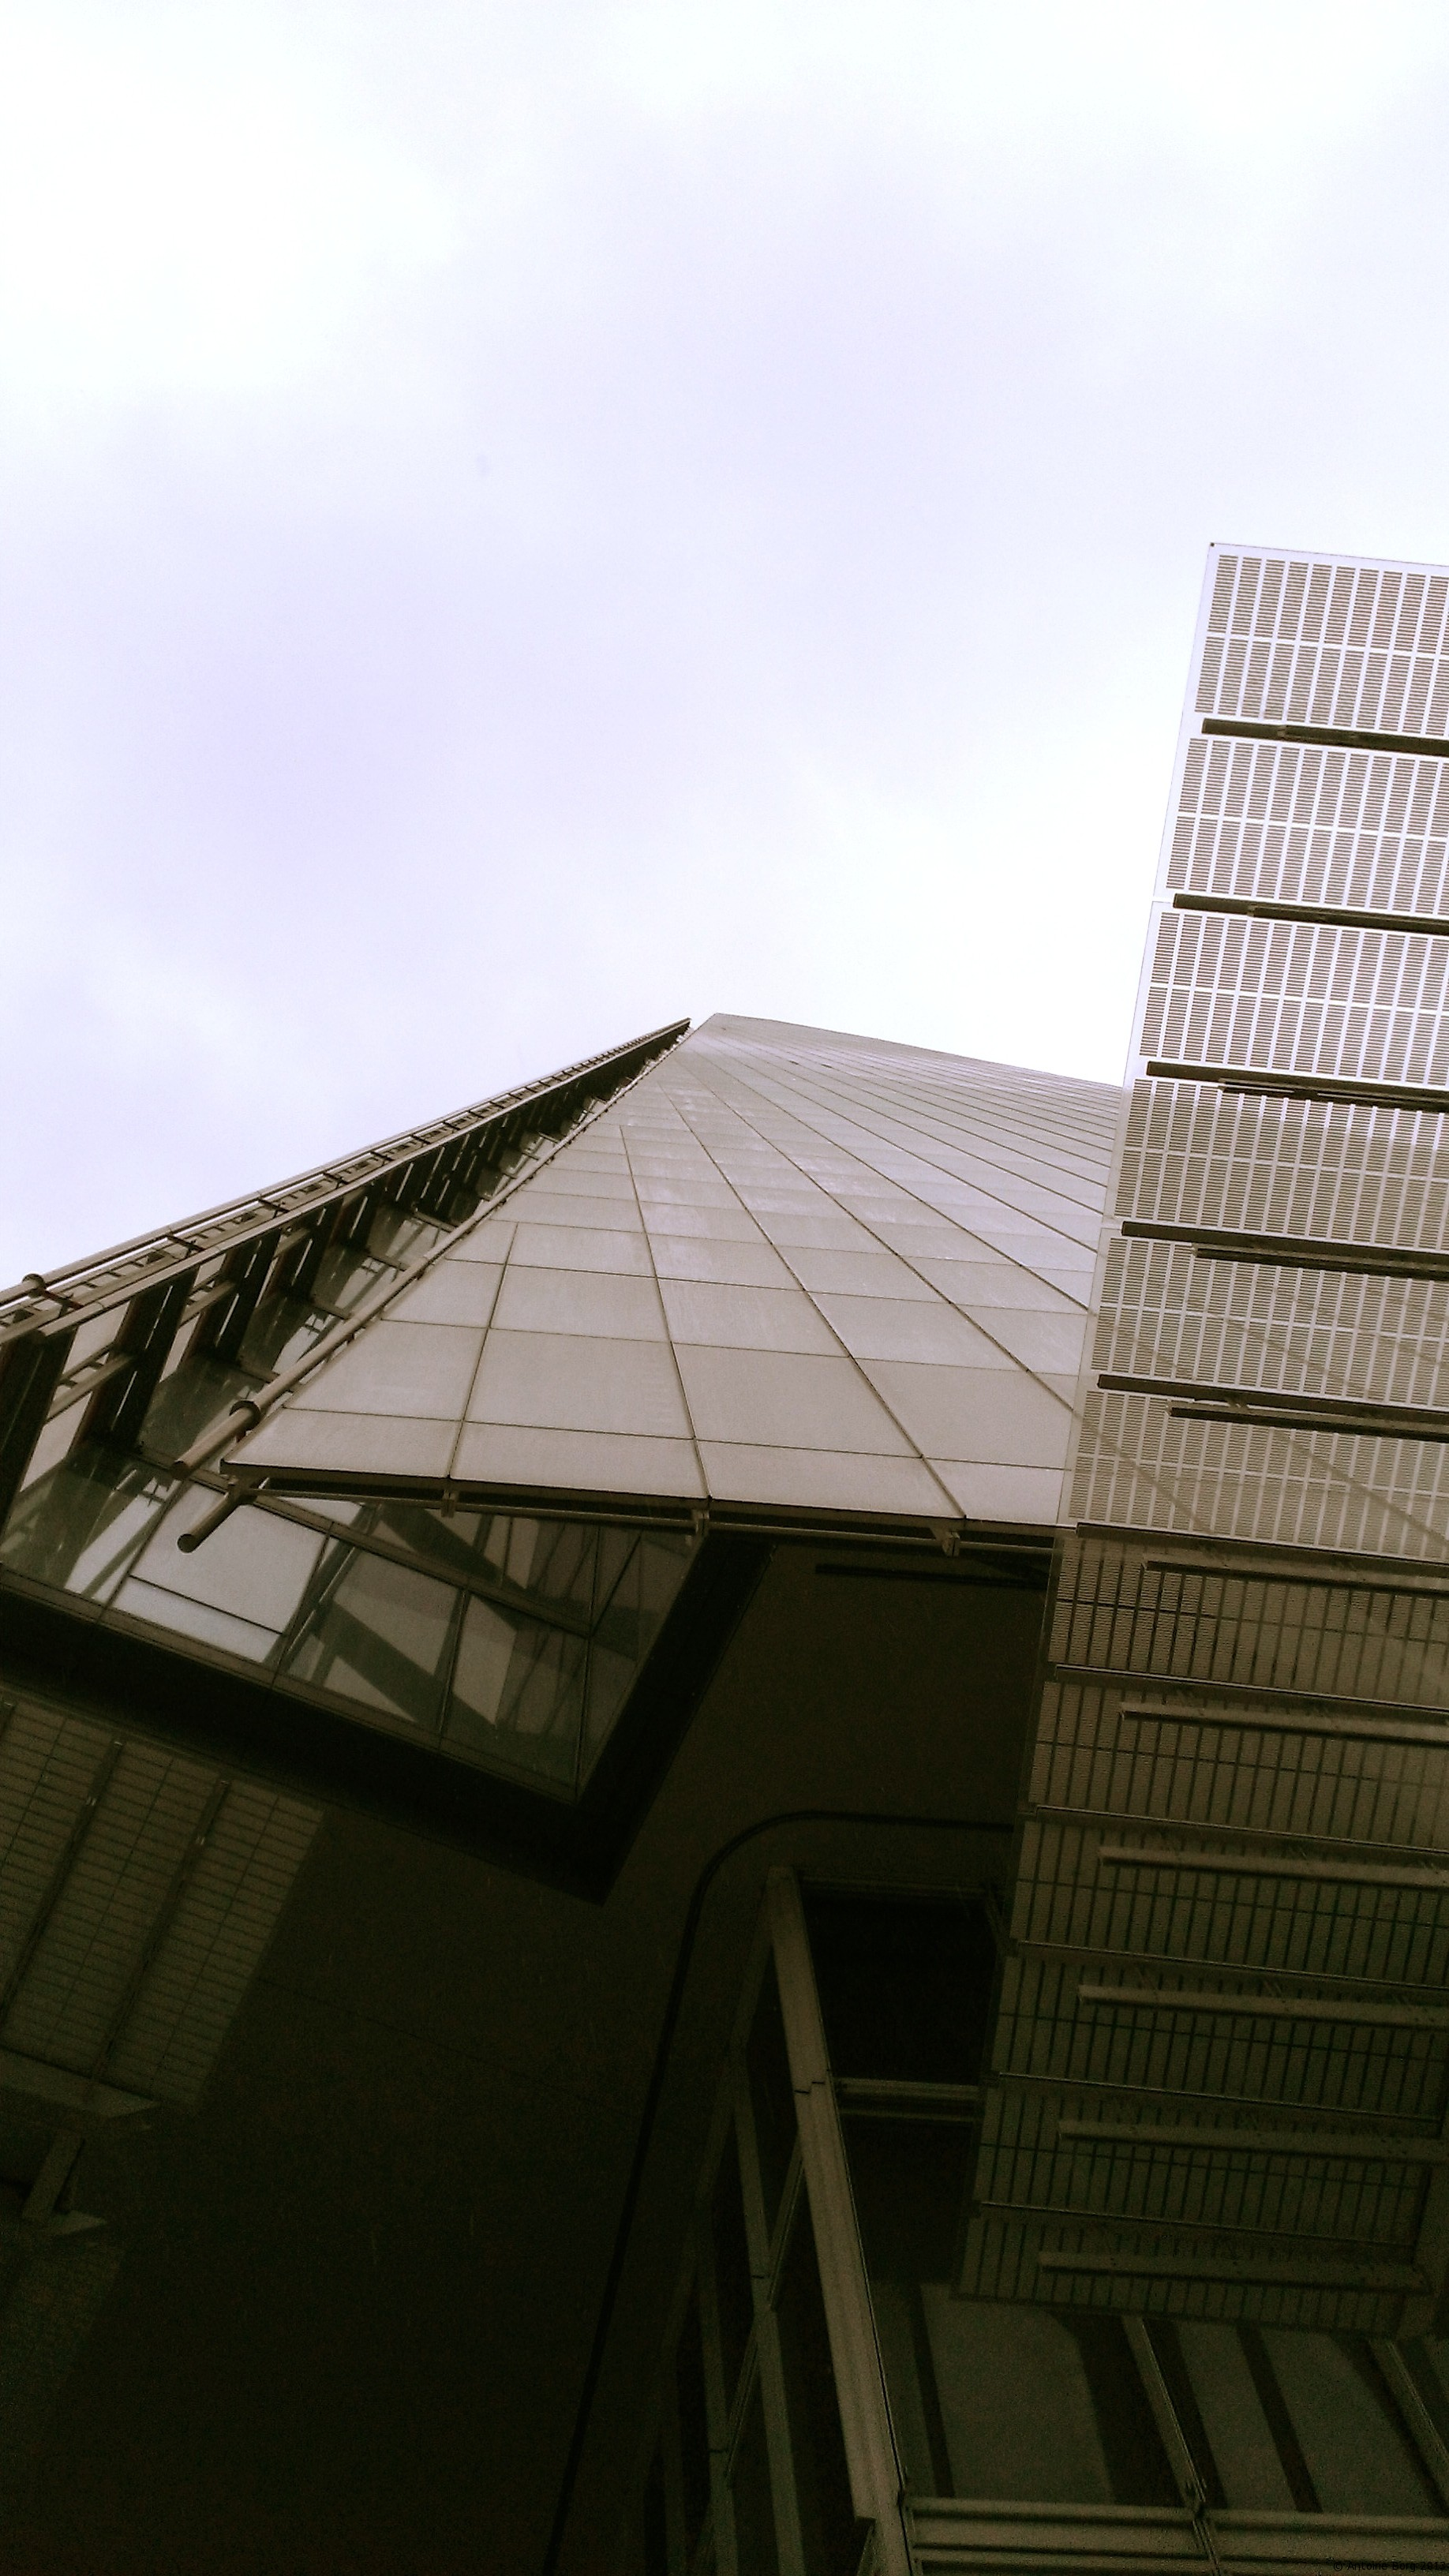 This is what the Shard skyscraper looks like from its base